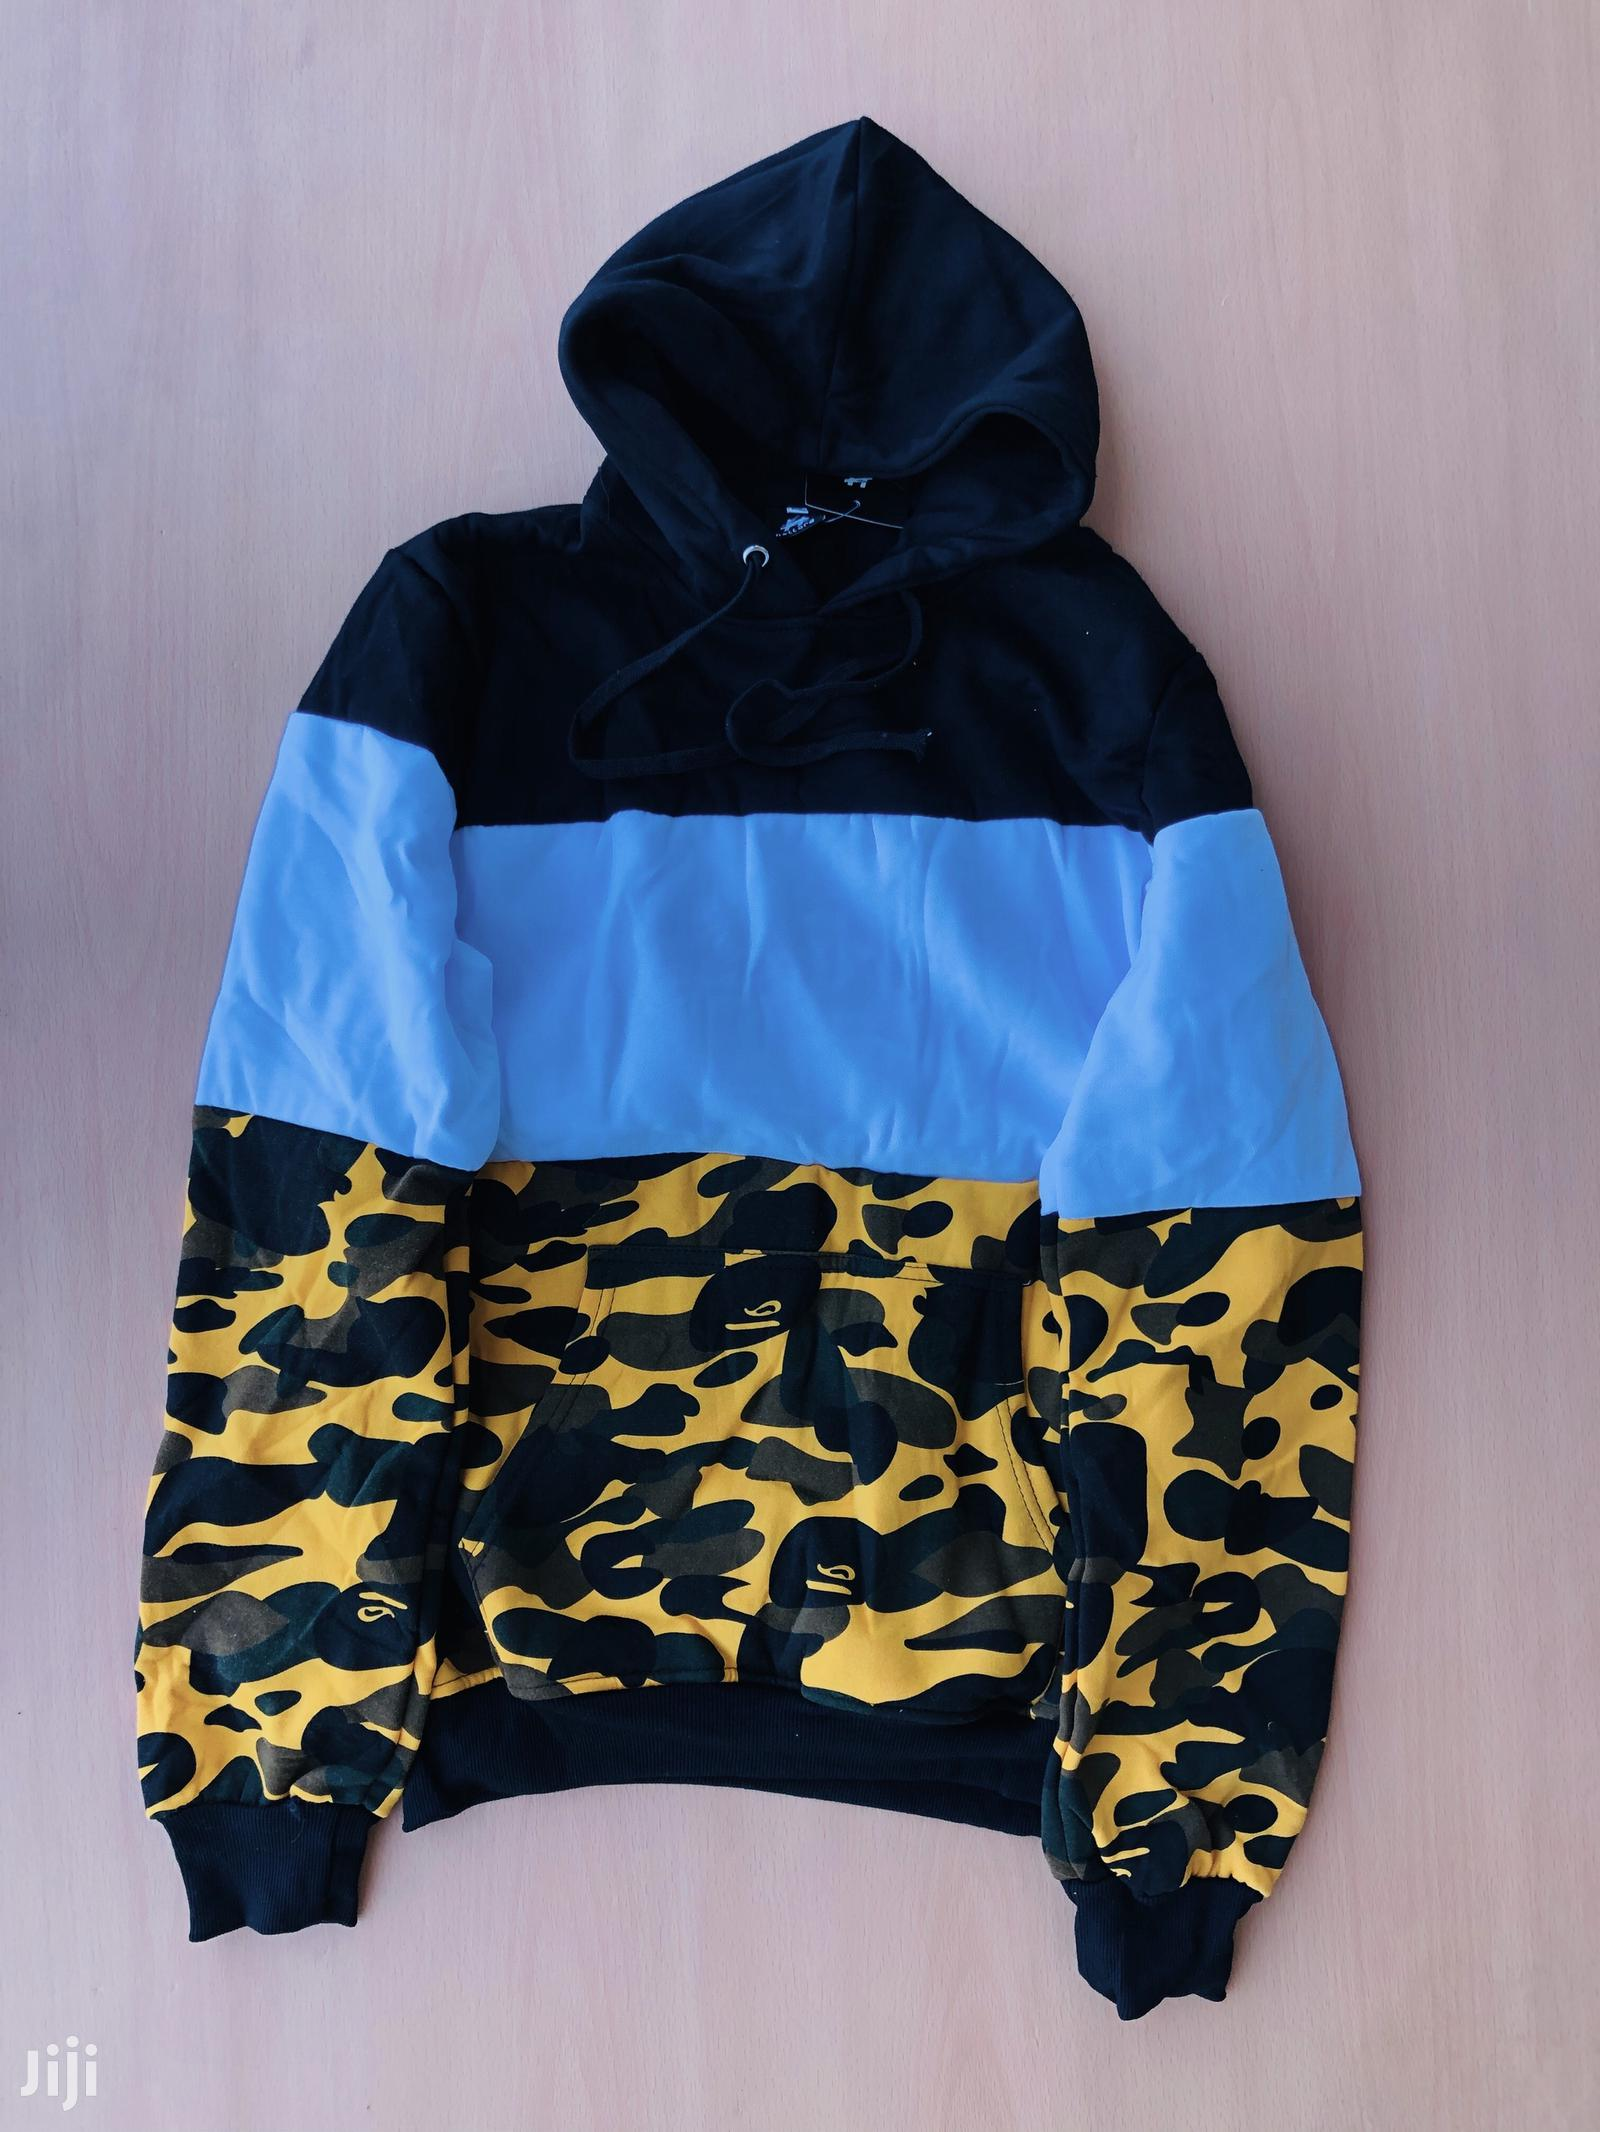 Quality Bape Hoodies Available In Sizes | Clothing for sale in Accra Metropolitan, Greater Accra, Ghana